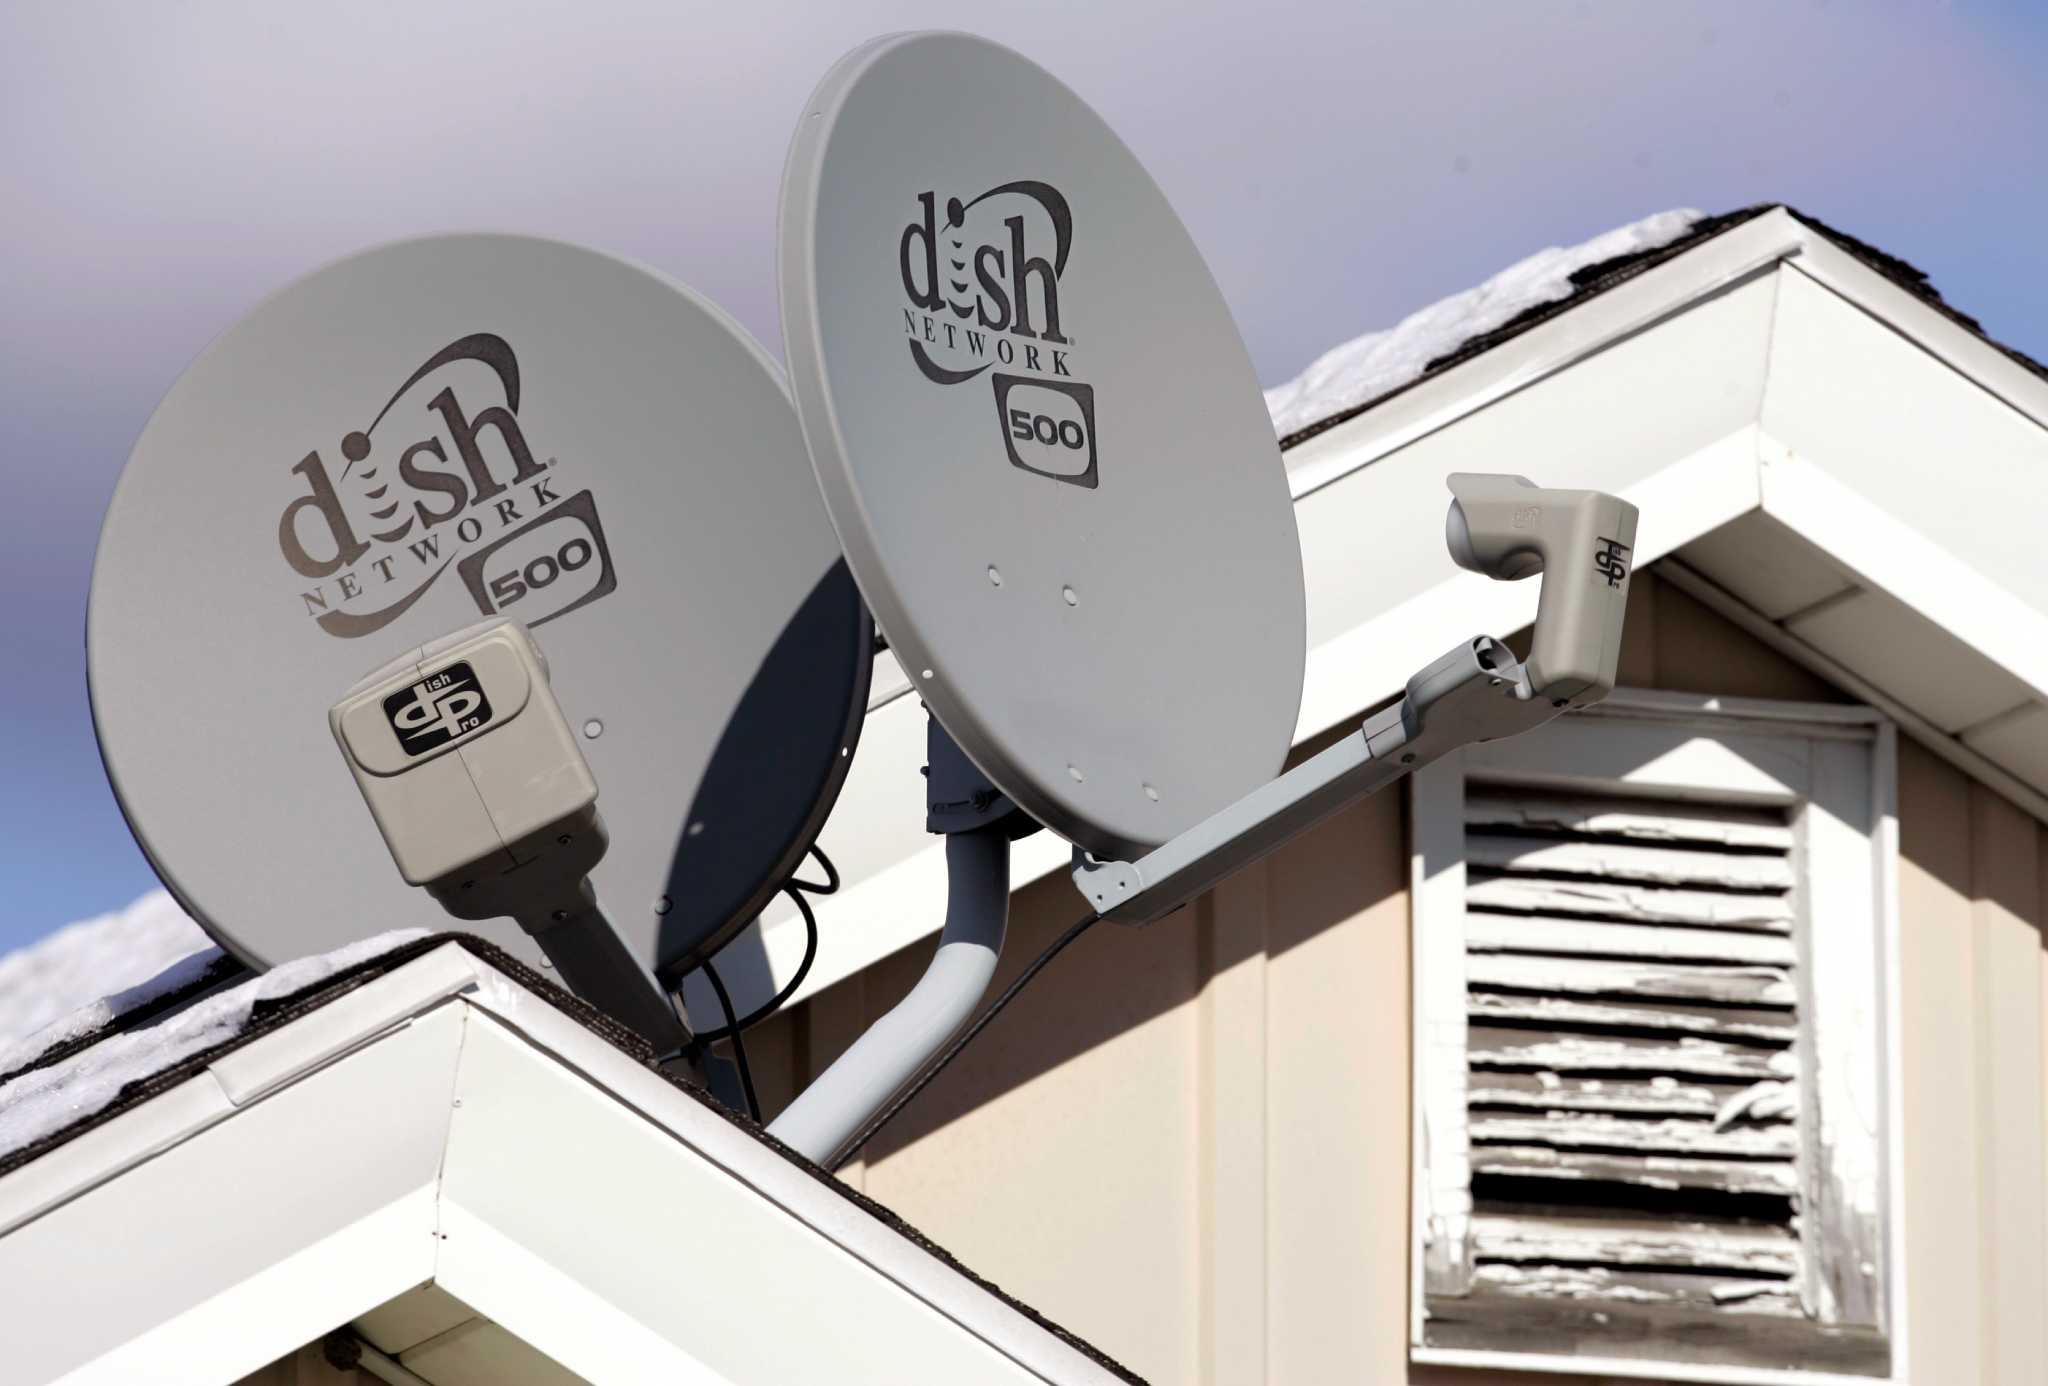 Dish, Comcast extend agreement as talks continue - SFGate